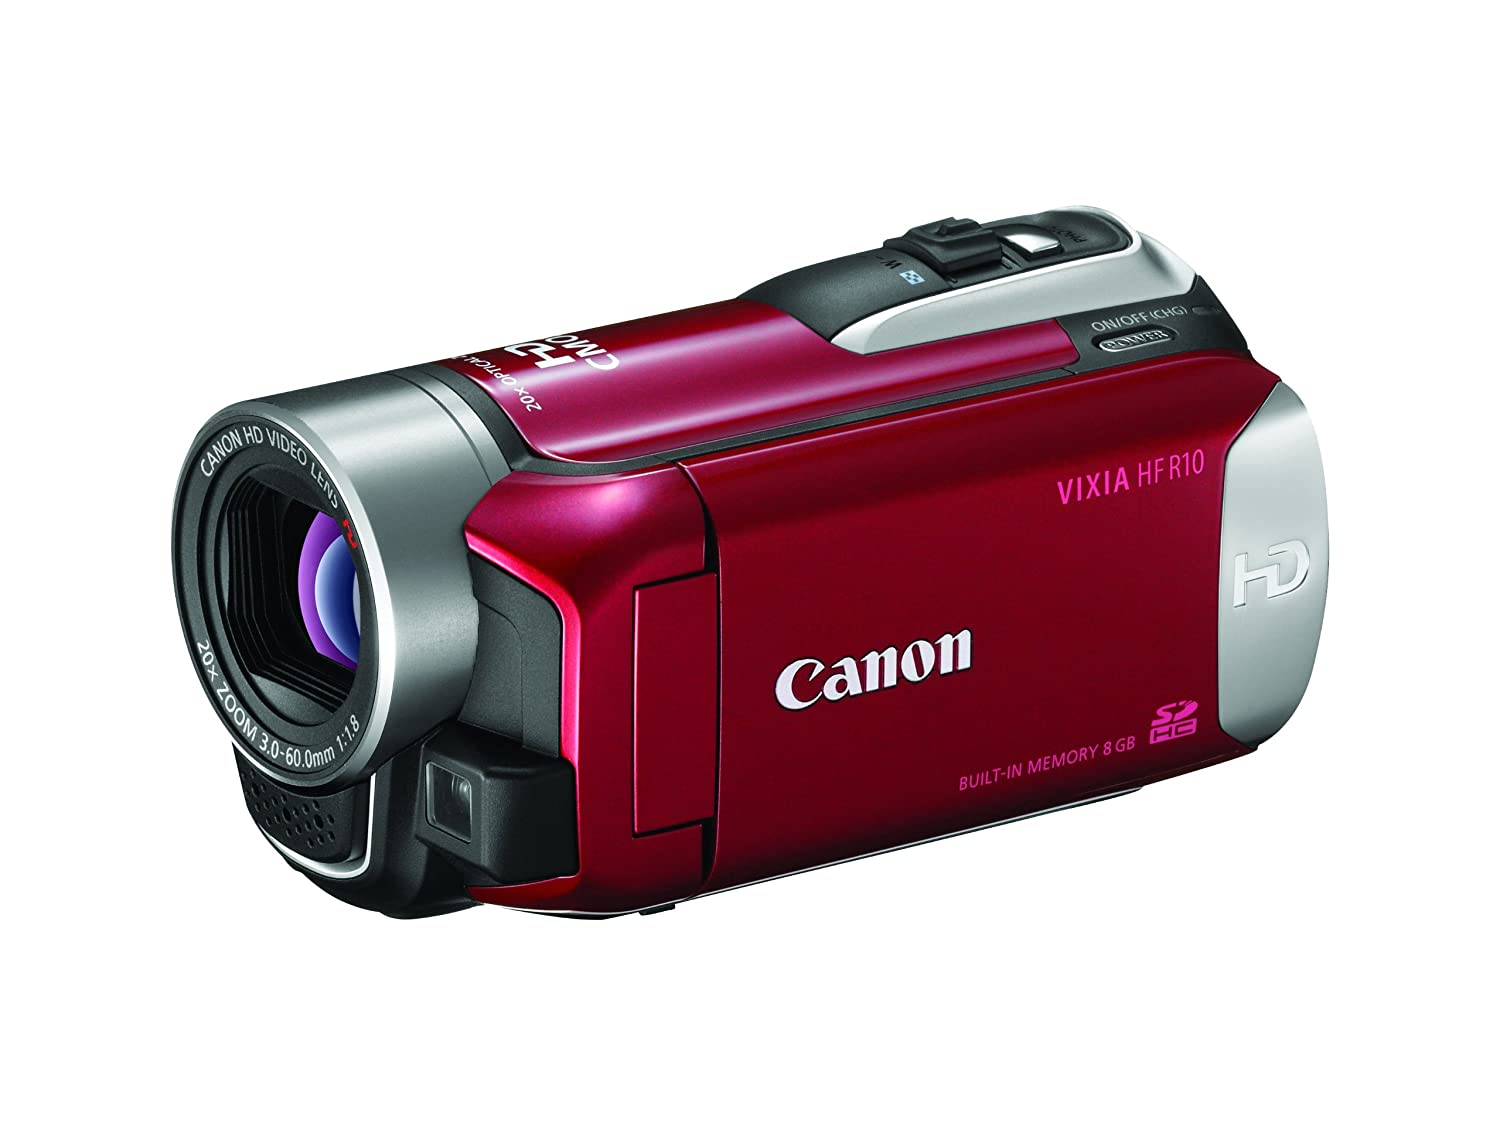 Amazon.com : Canon VIXIA HF R10 Full HD Camcorder with 8 GB Flash Memory  (Black) (Discontinued by Manufacturer) : Camera & Photo